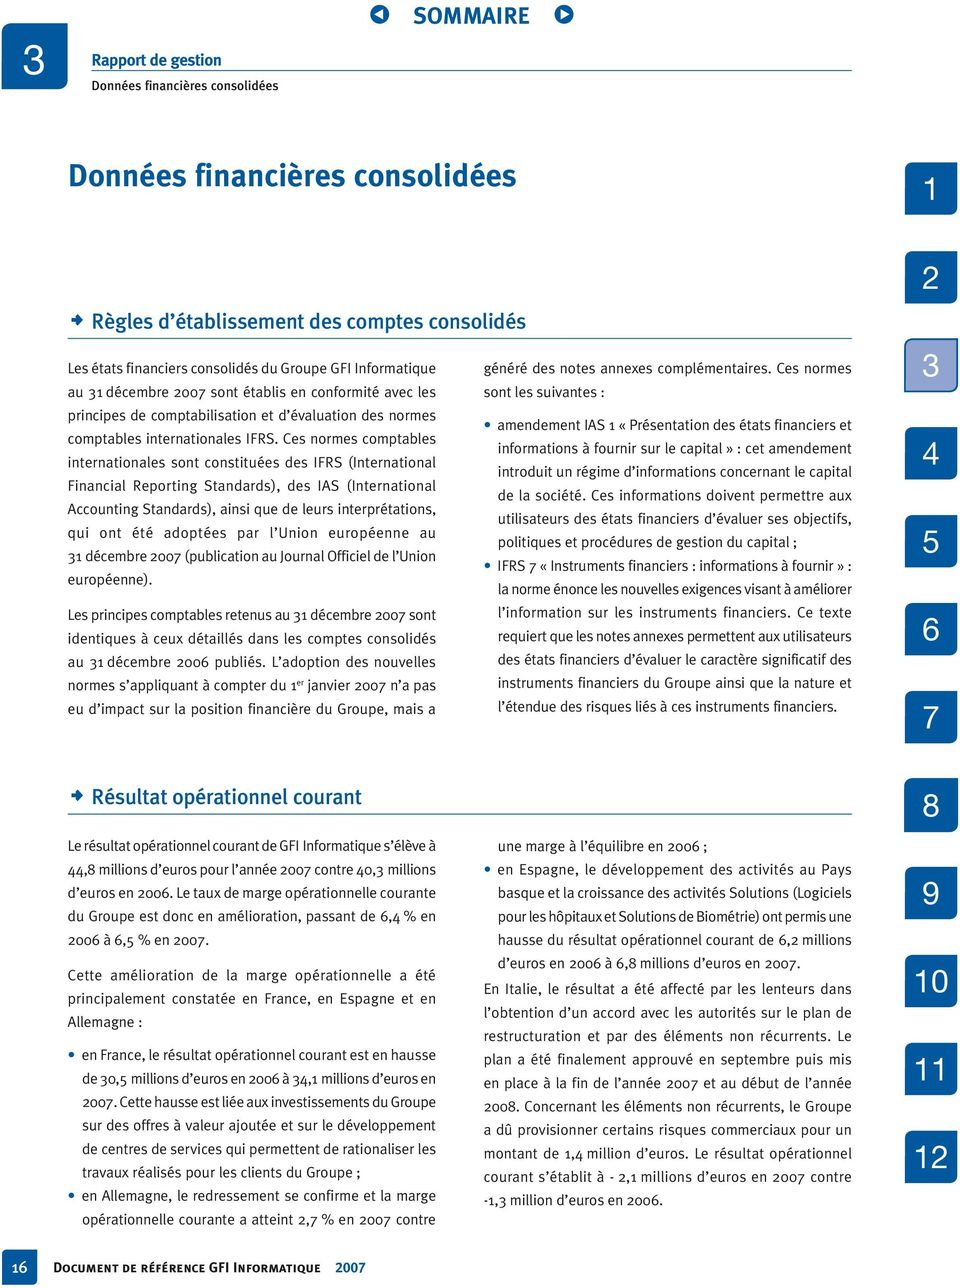 Ces normes comptables internationales sont constituées des IFRS (International Financial Reporting Standards), des IAS (International Accounting Standards), ainsi que de leurs interprétations, qui